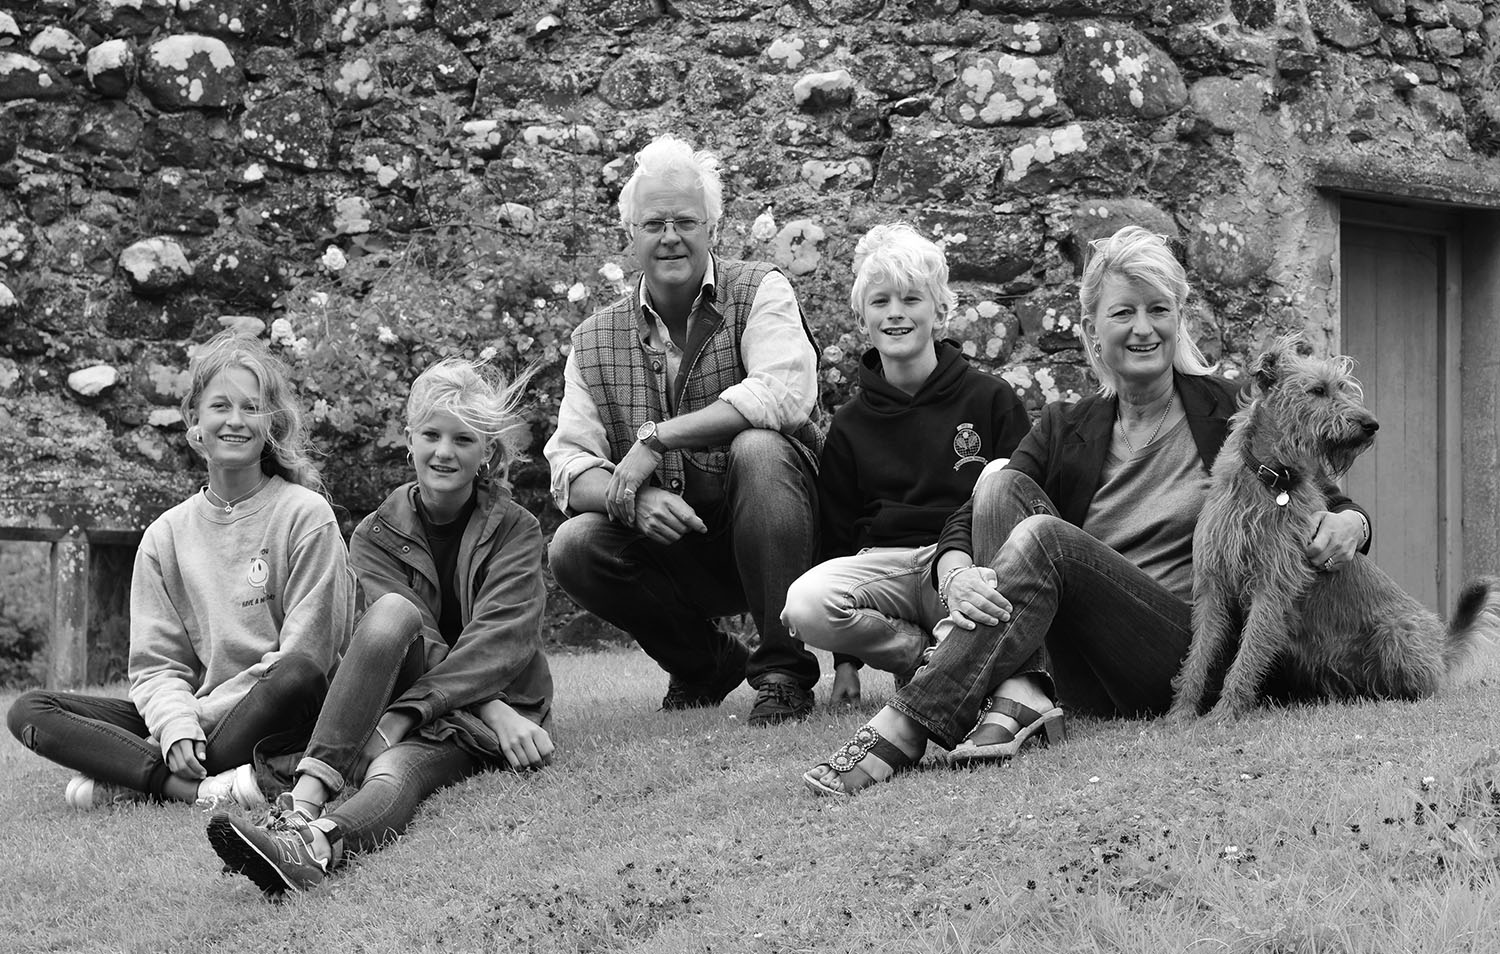 Lissanoure Castle - Our Family photograph